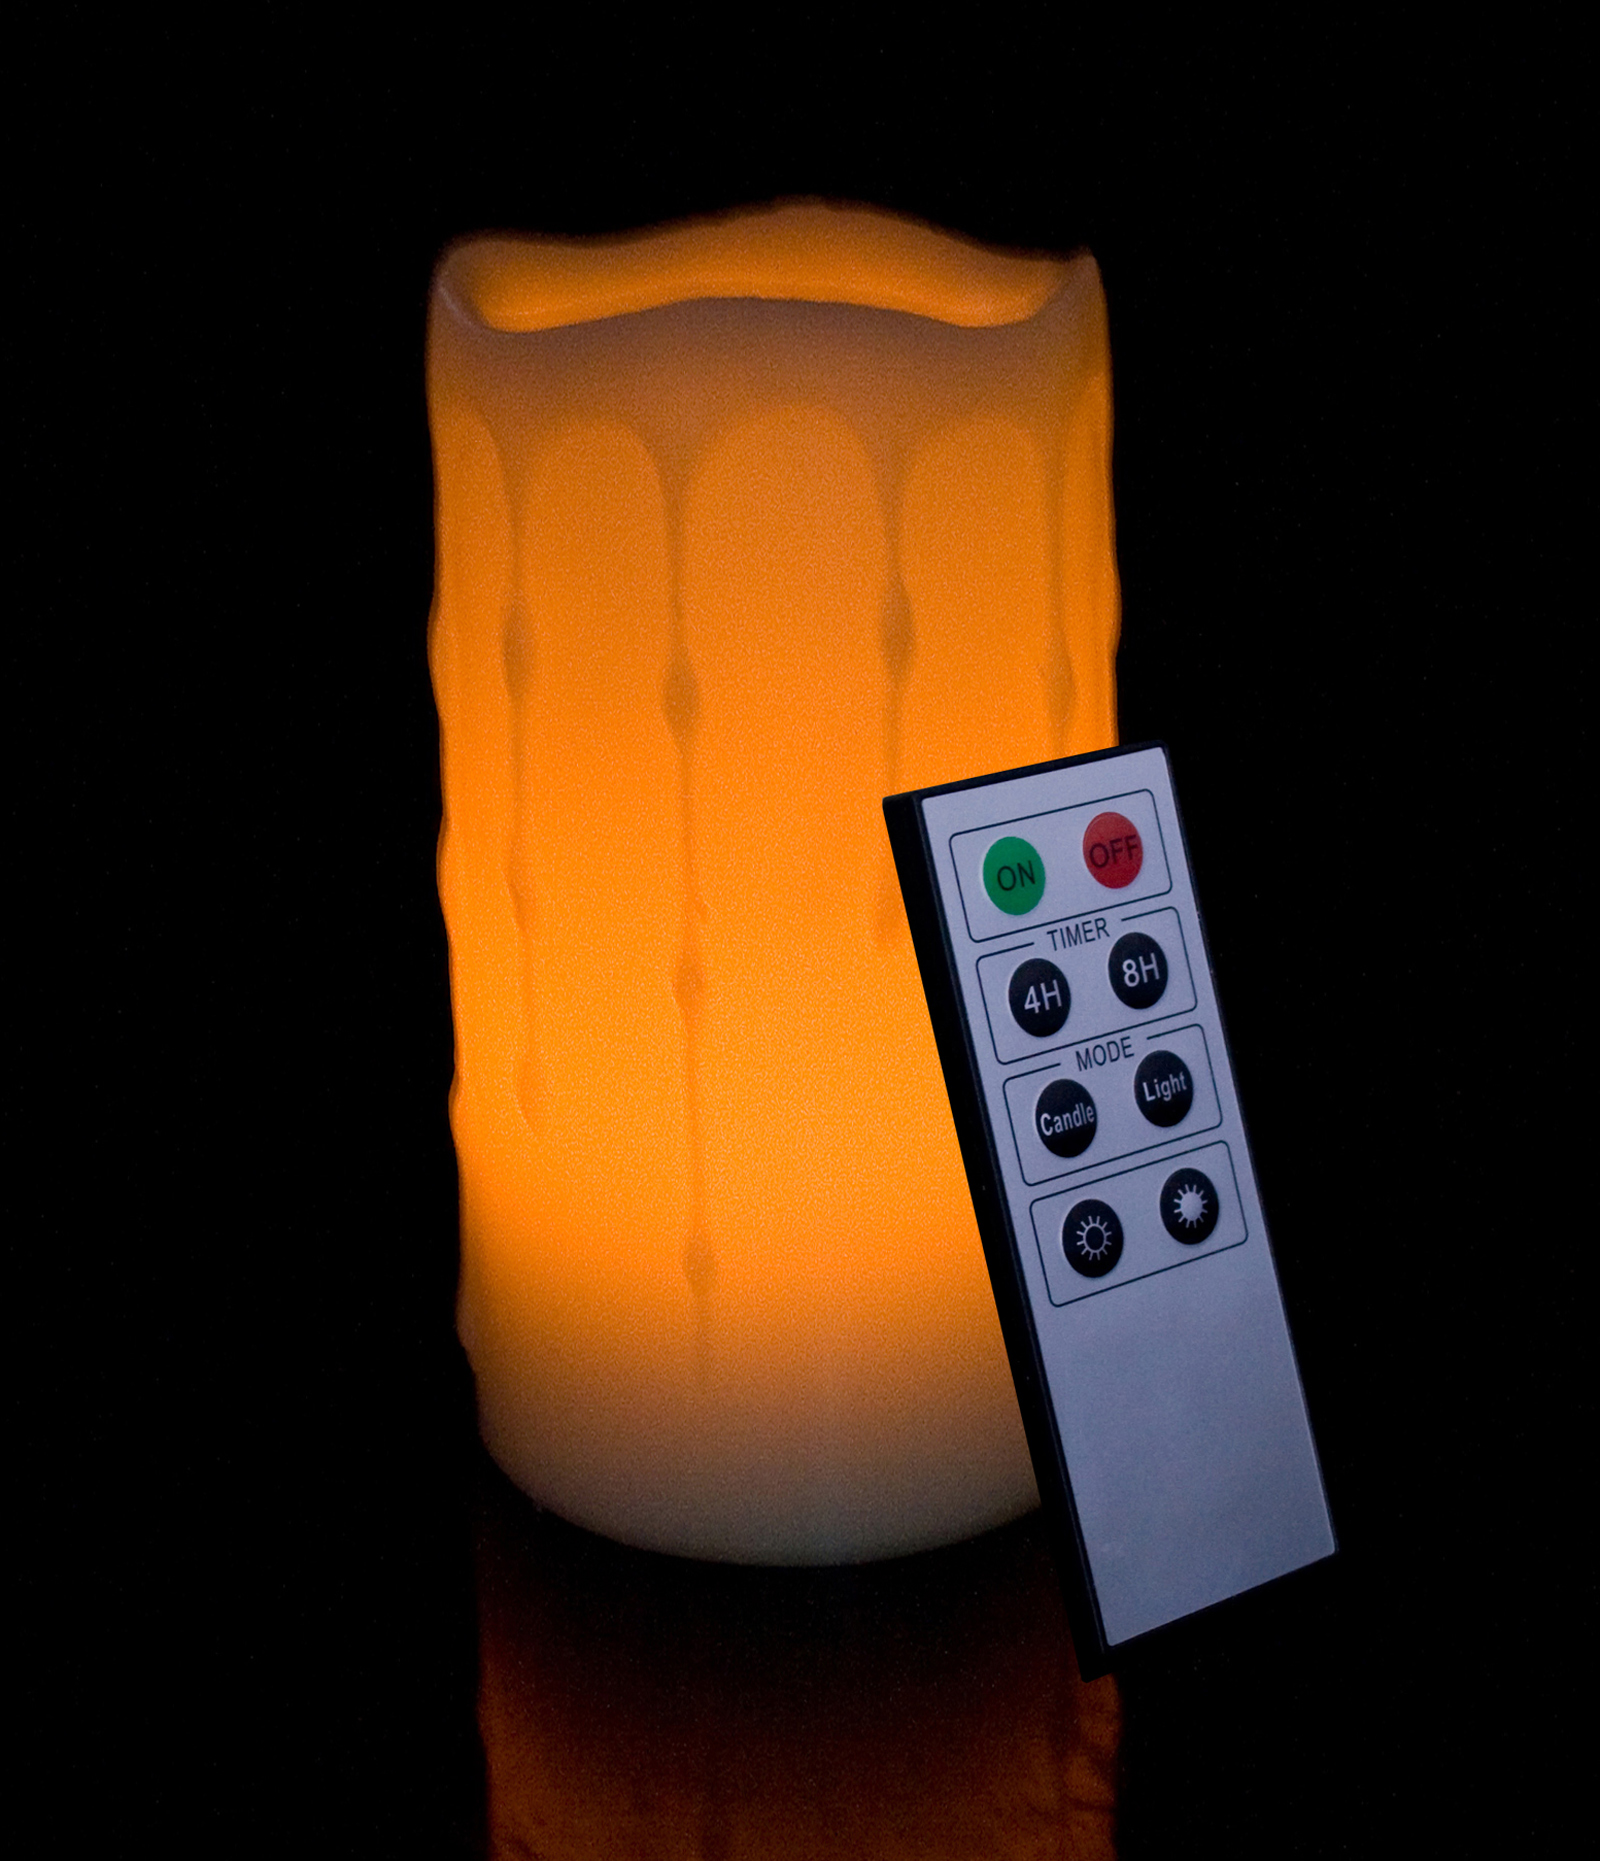 Round Melted Edge with Wax Drip Effect Remote Controlled Flameless Wax Pillar Candle - 6 Inch Tall